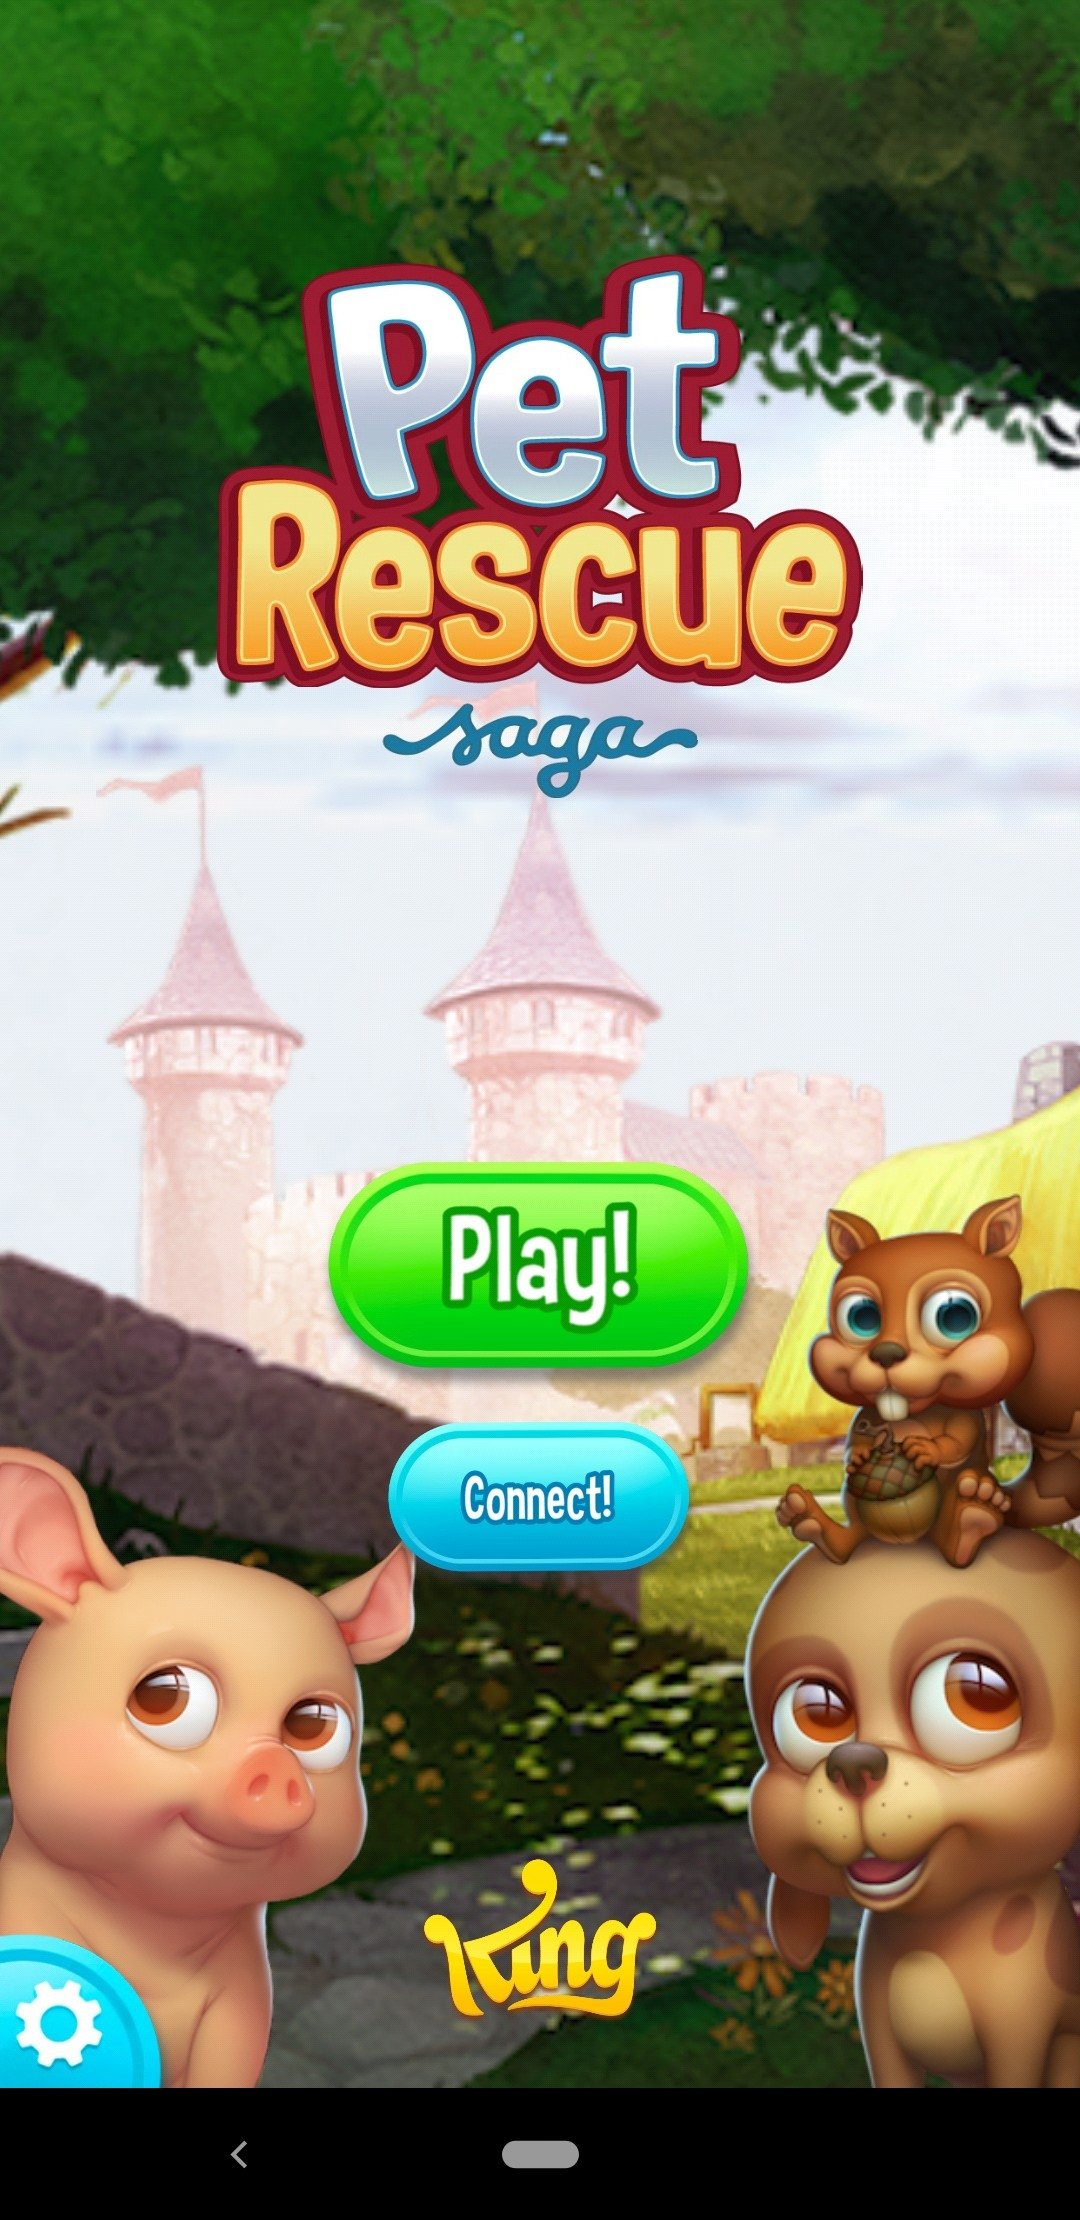 Pet Rescue Saga 1 188 19 - Download for Android APK Free